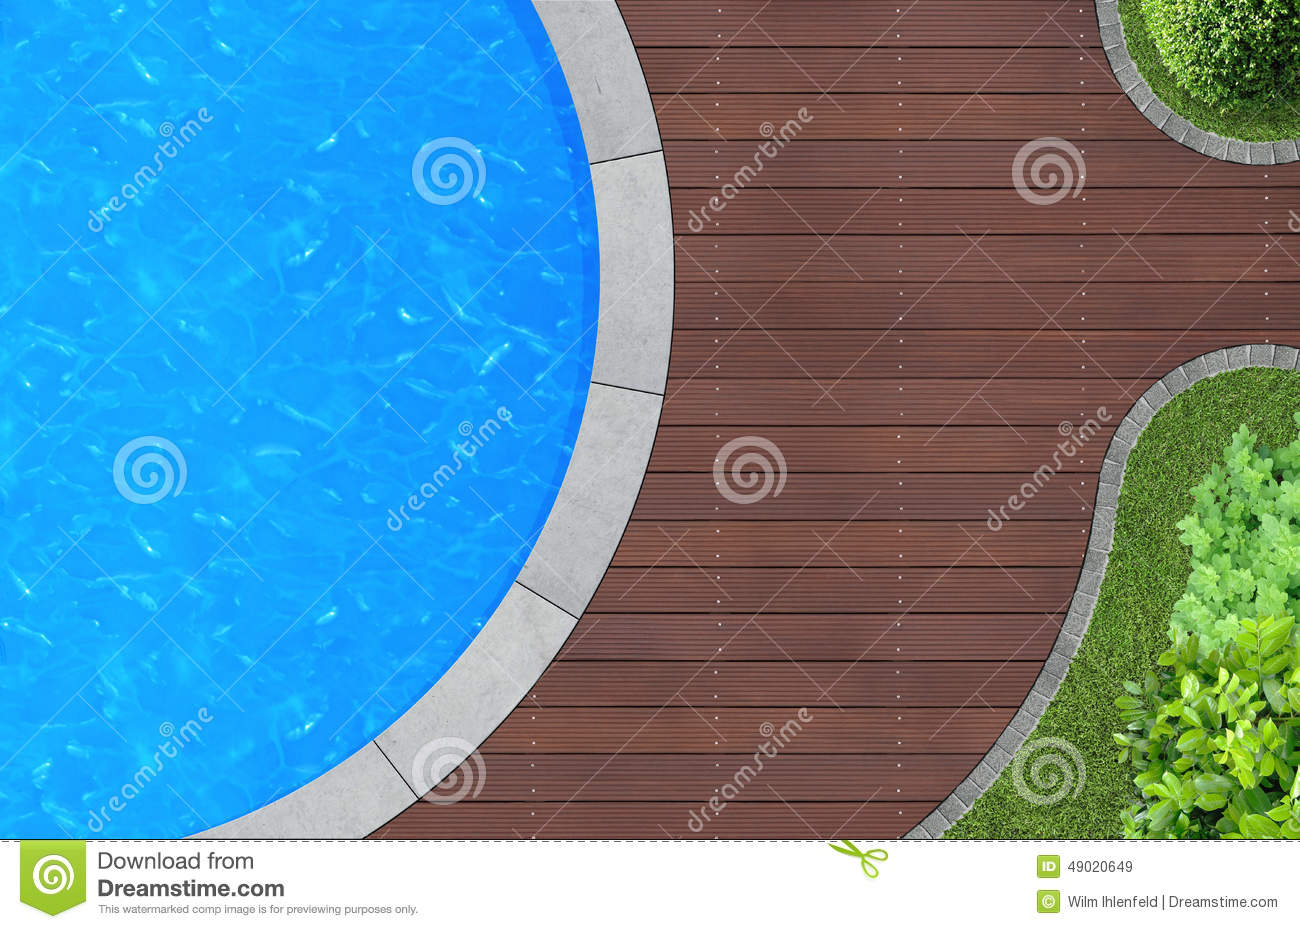 Yard Lawn Green Grass And Ornamental Pool Stock Images.